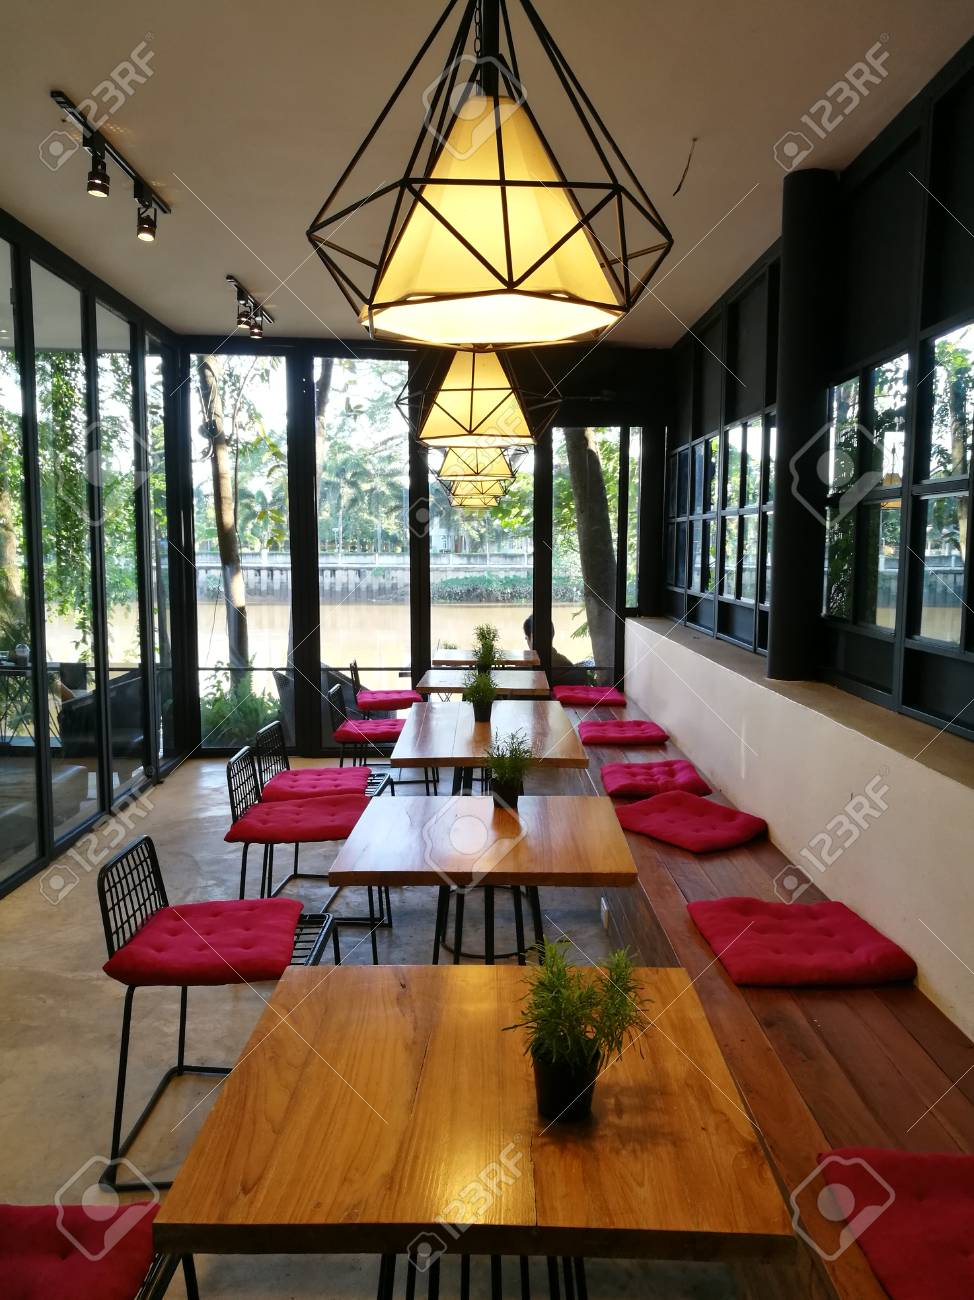 Coffee Shop Interior With Wooden Tables Red Chairs Plant And Stock Photo Picture And Royalty Free Image Image 79842122